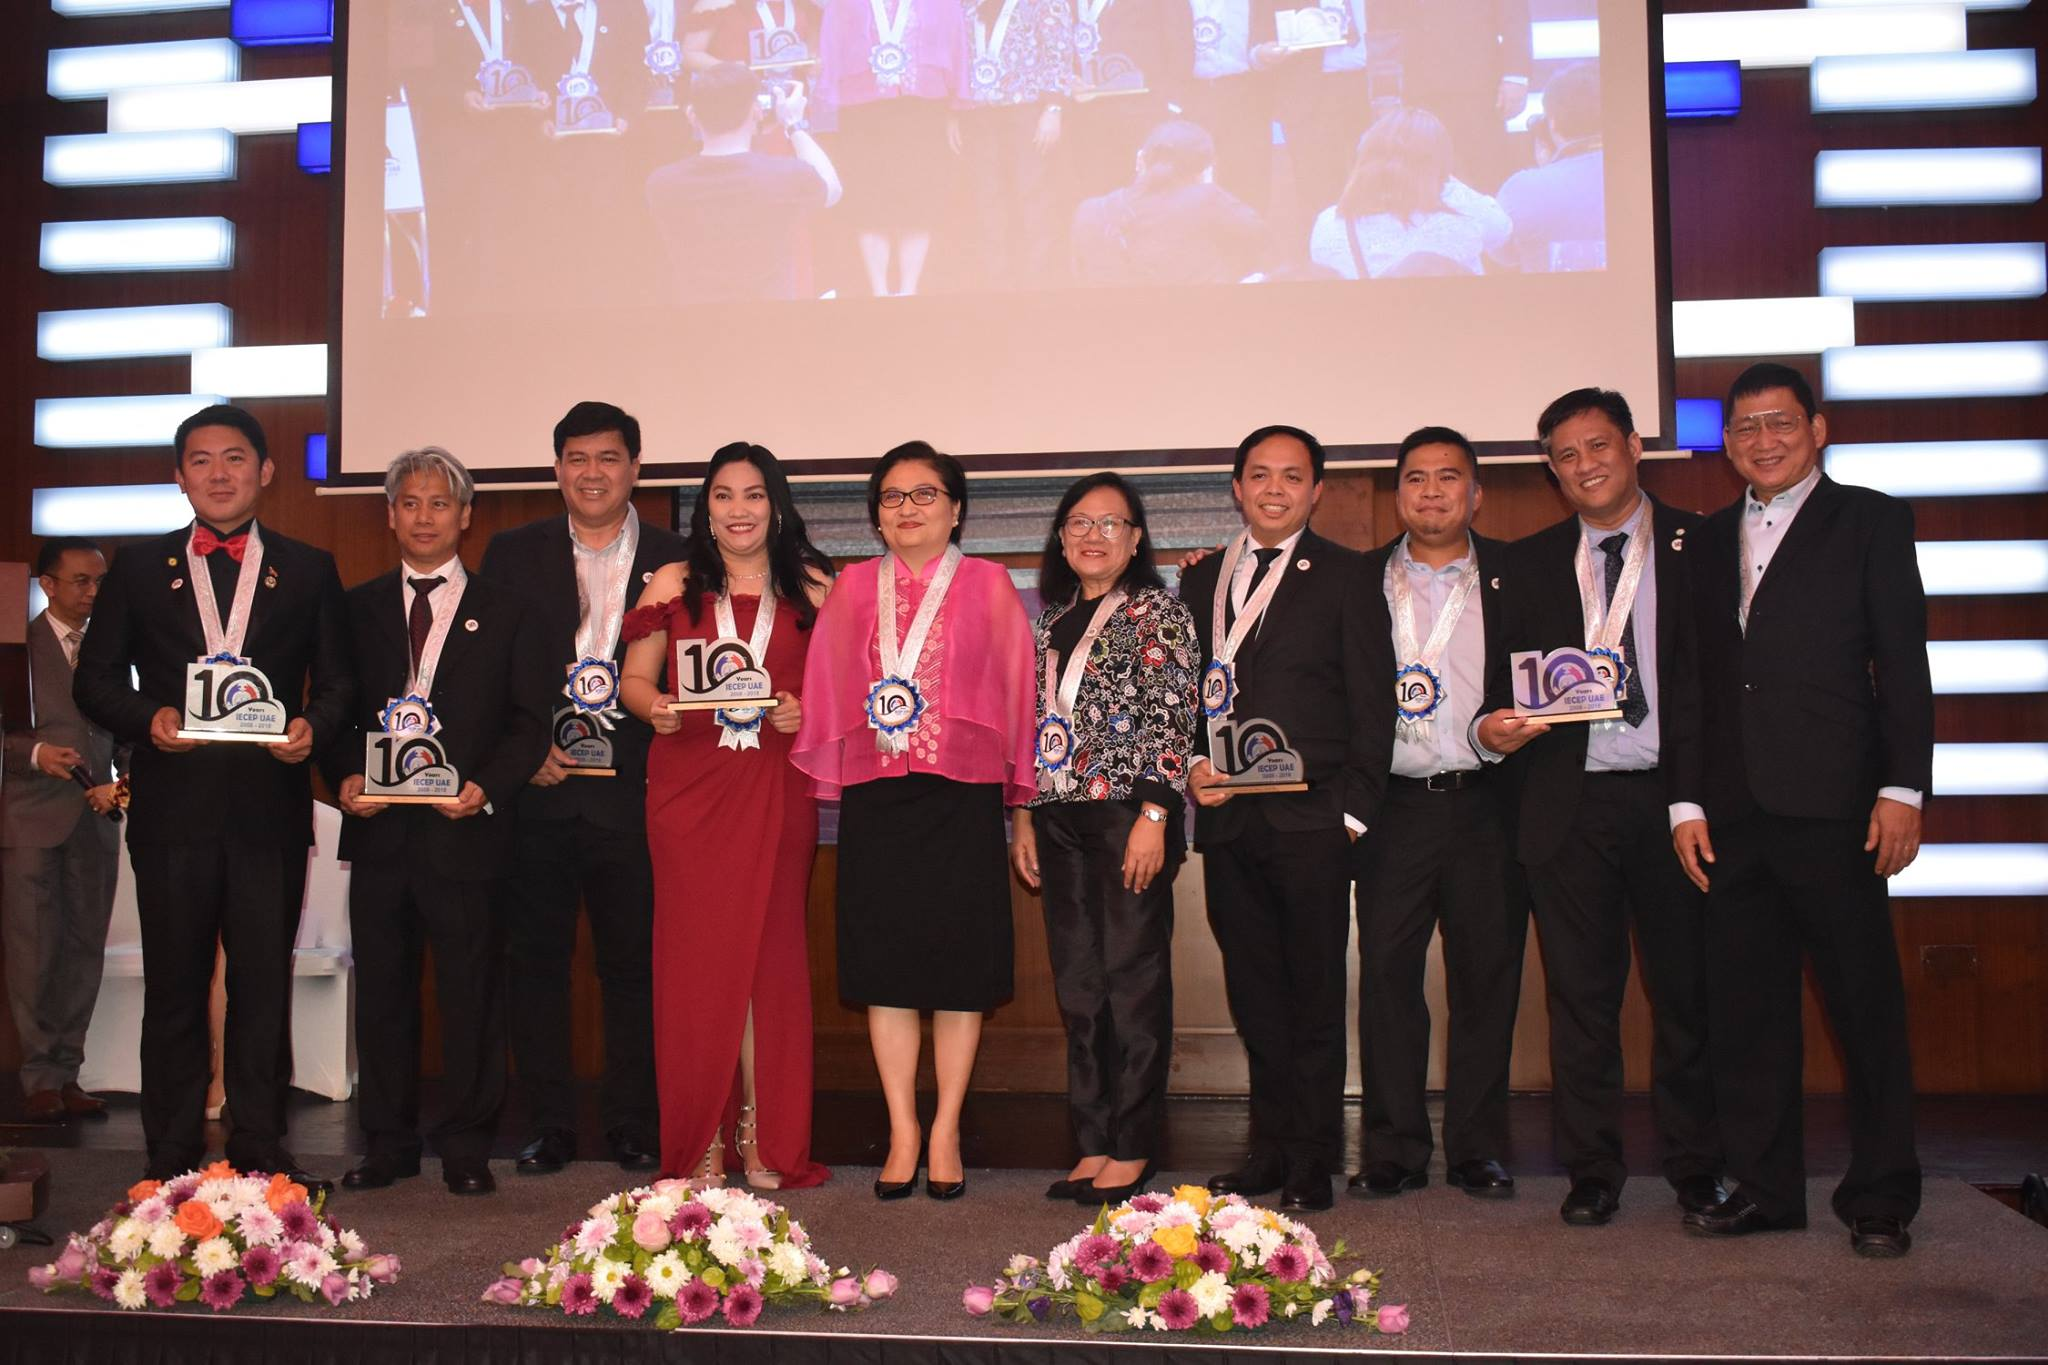 IECEP-UAE celebrates 10 years of continuous service for Filipino Electronics Engineers in the UAE